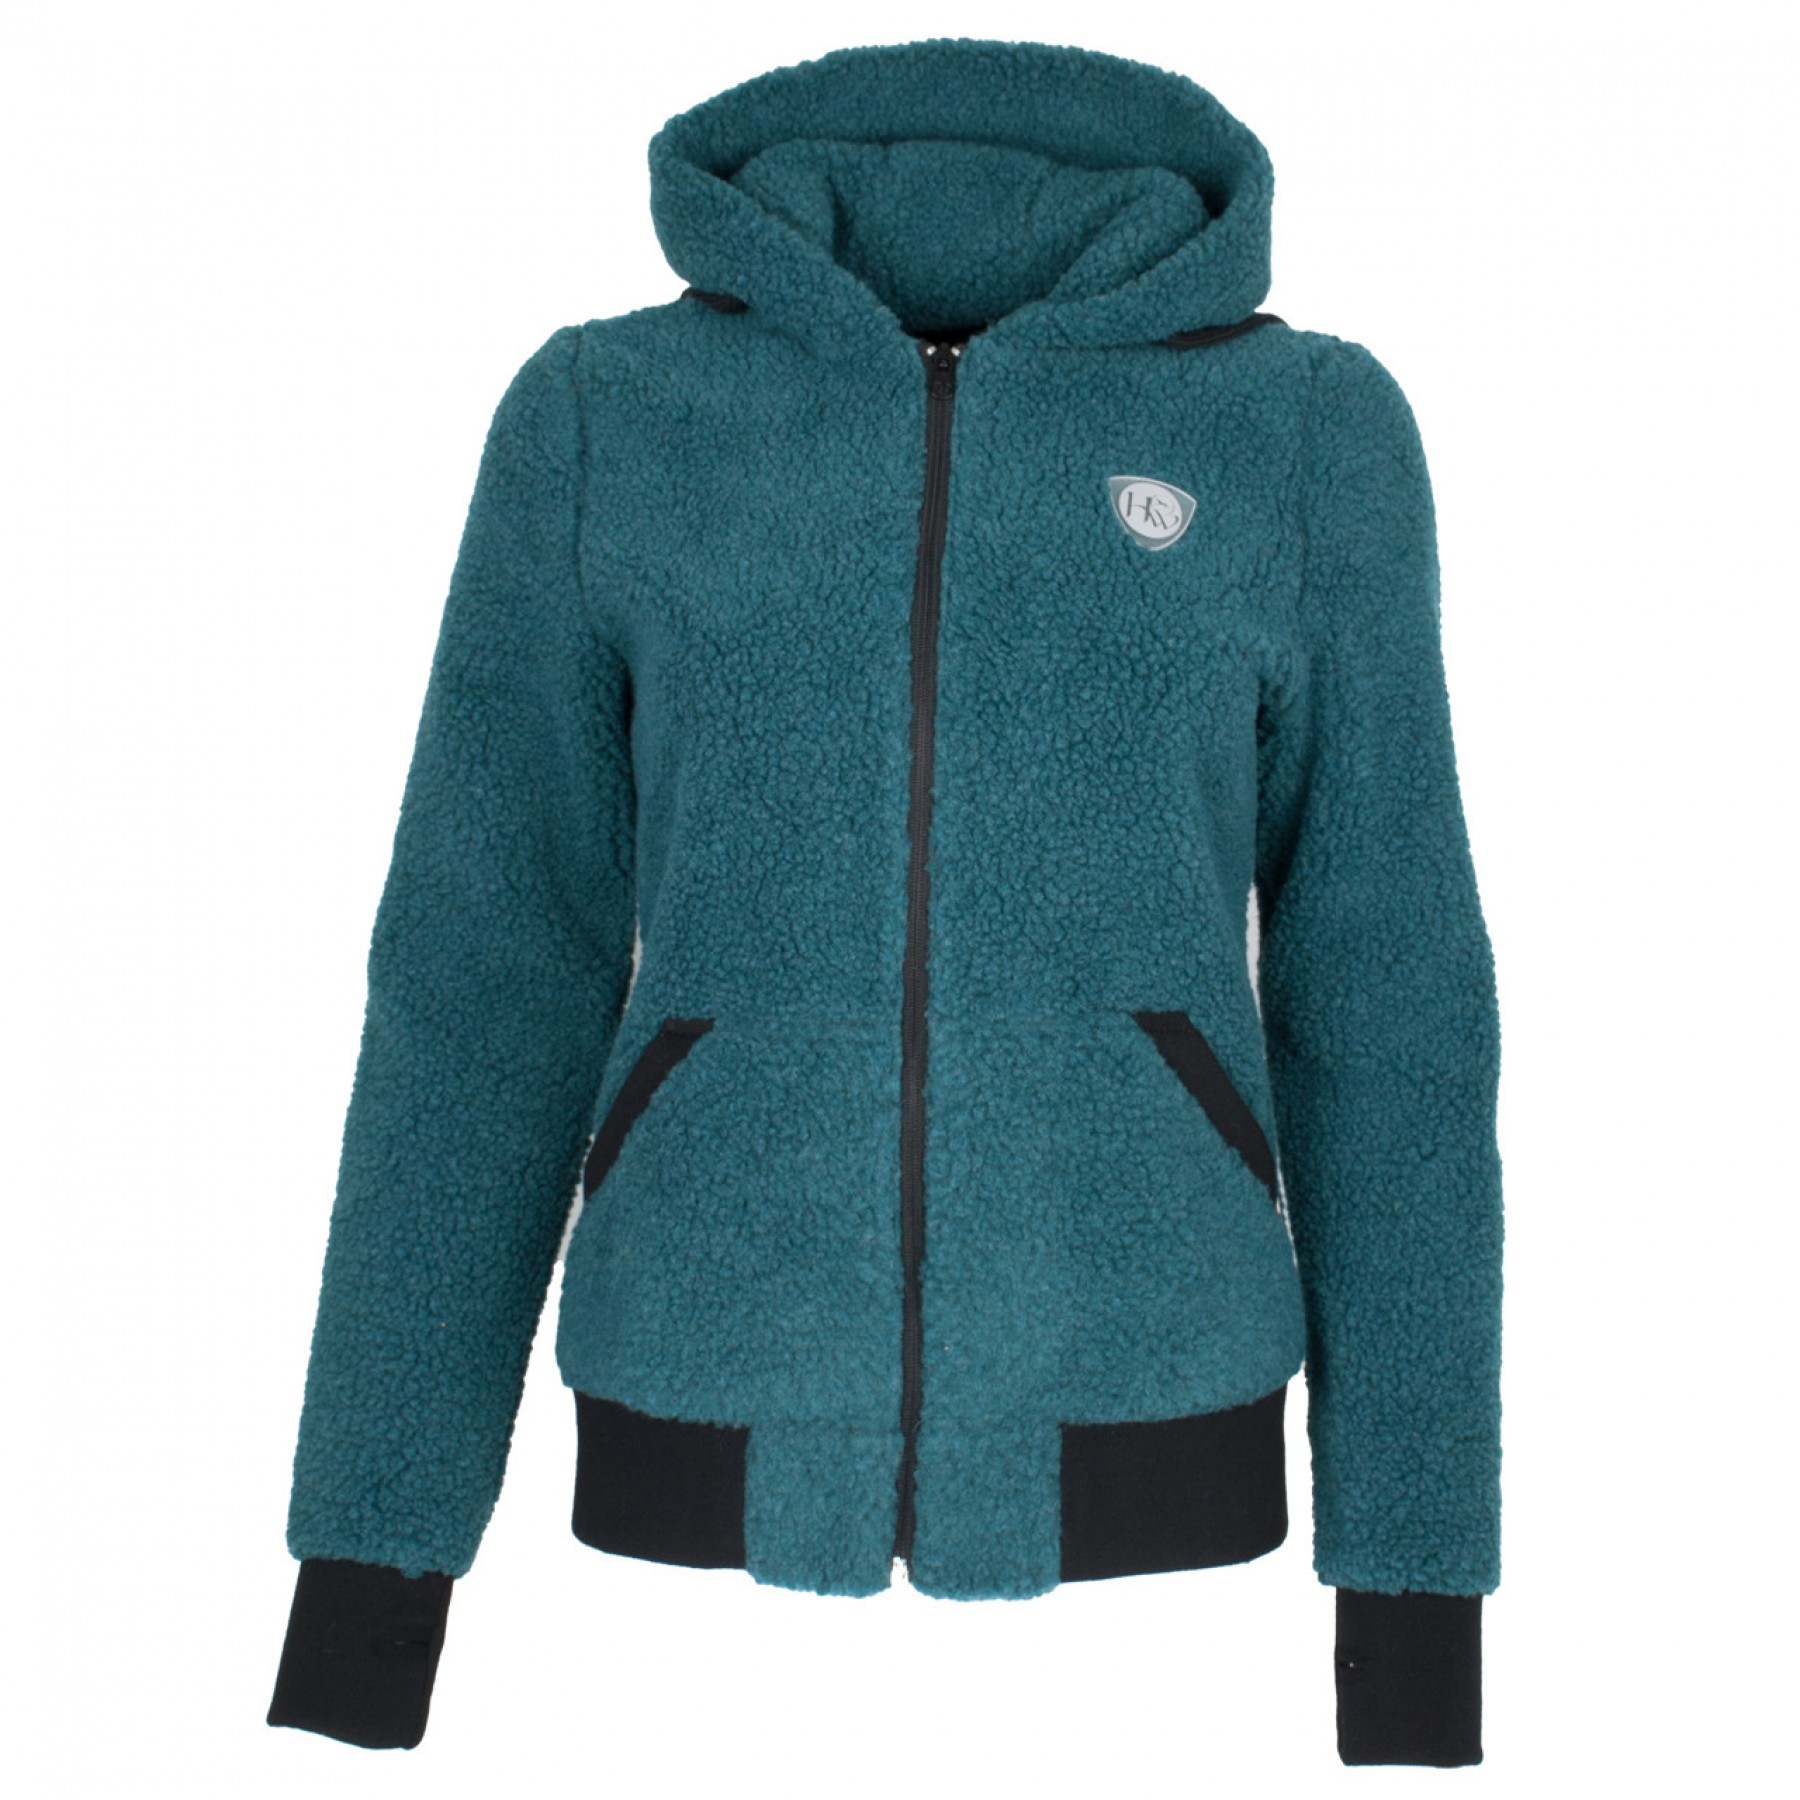 Ladies Fleece Fluffy Softie By Horseware Saddles And Style